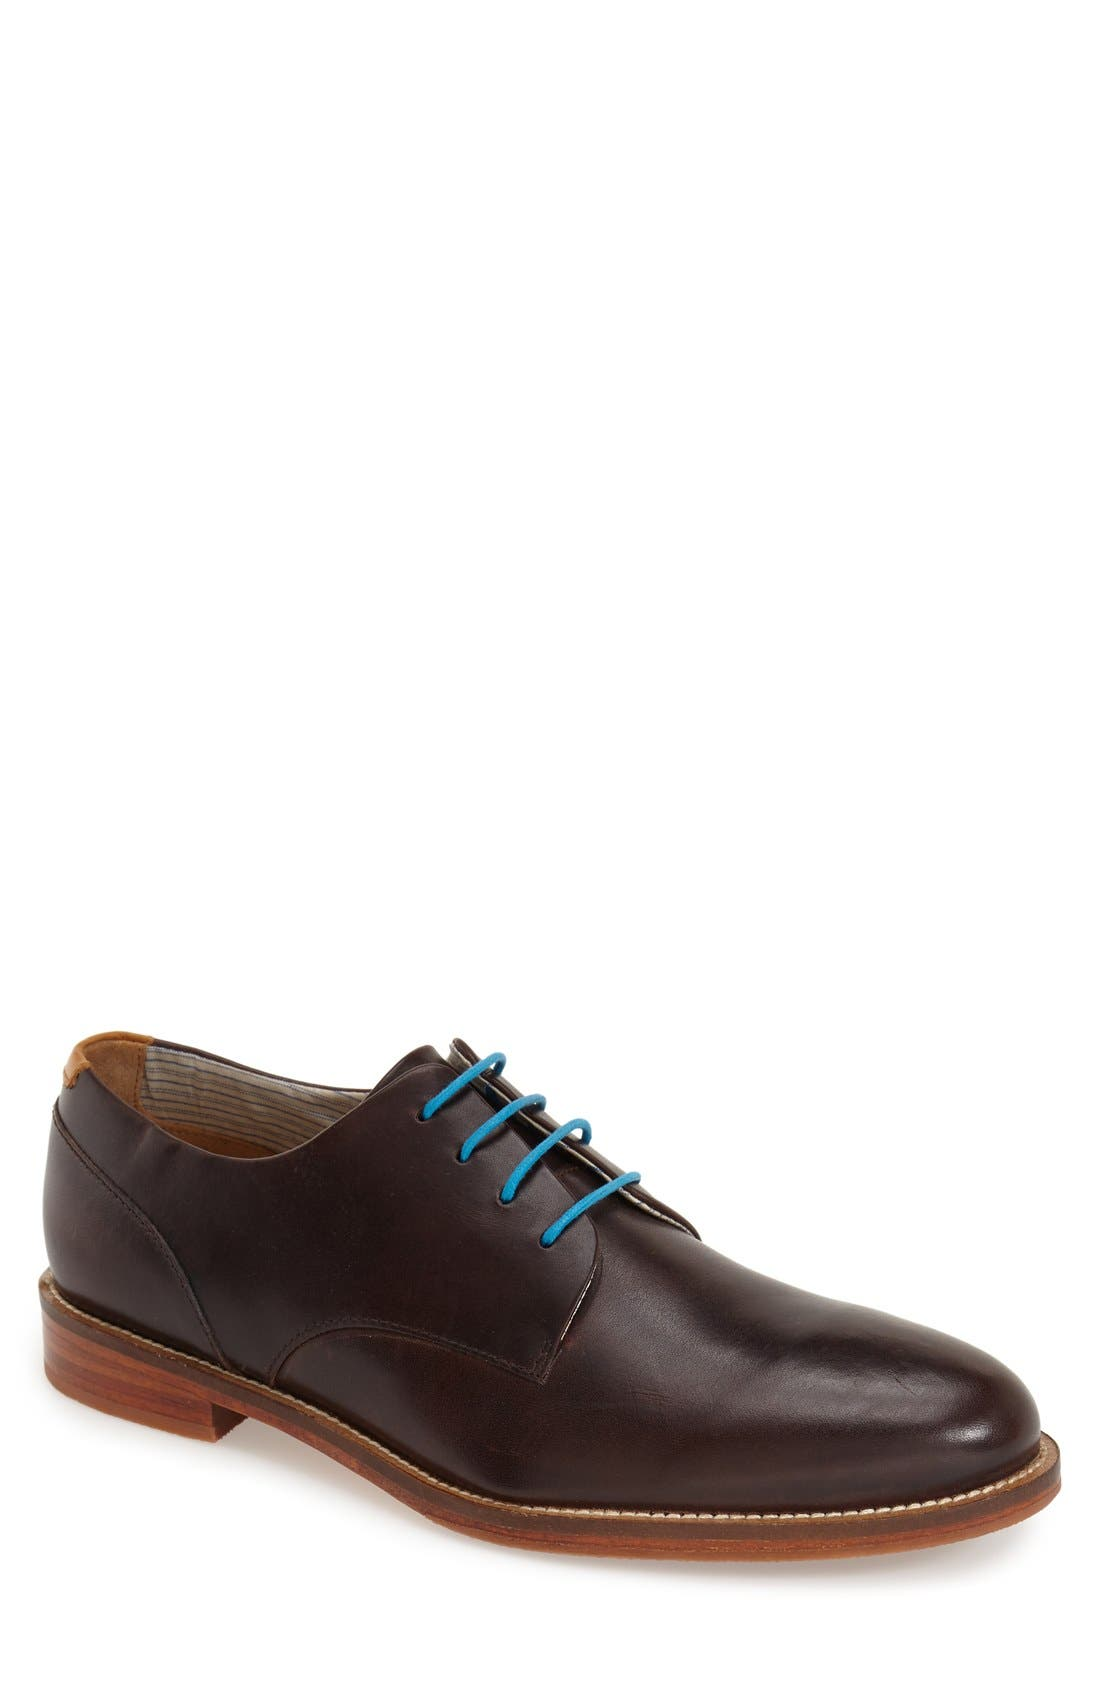 'William Plus' Plain Toe Derby,                         Main,                         color, Dark Brown